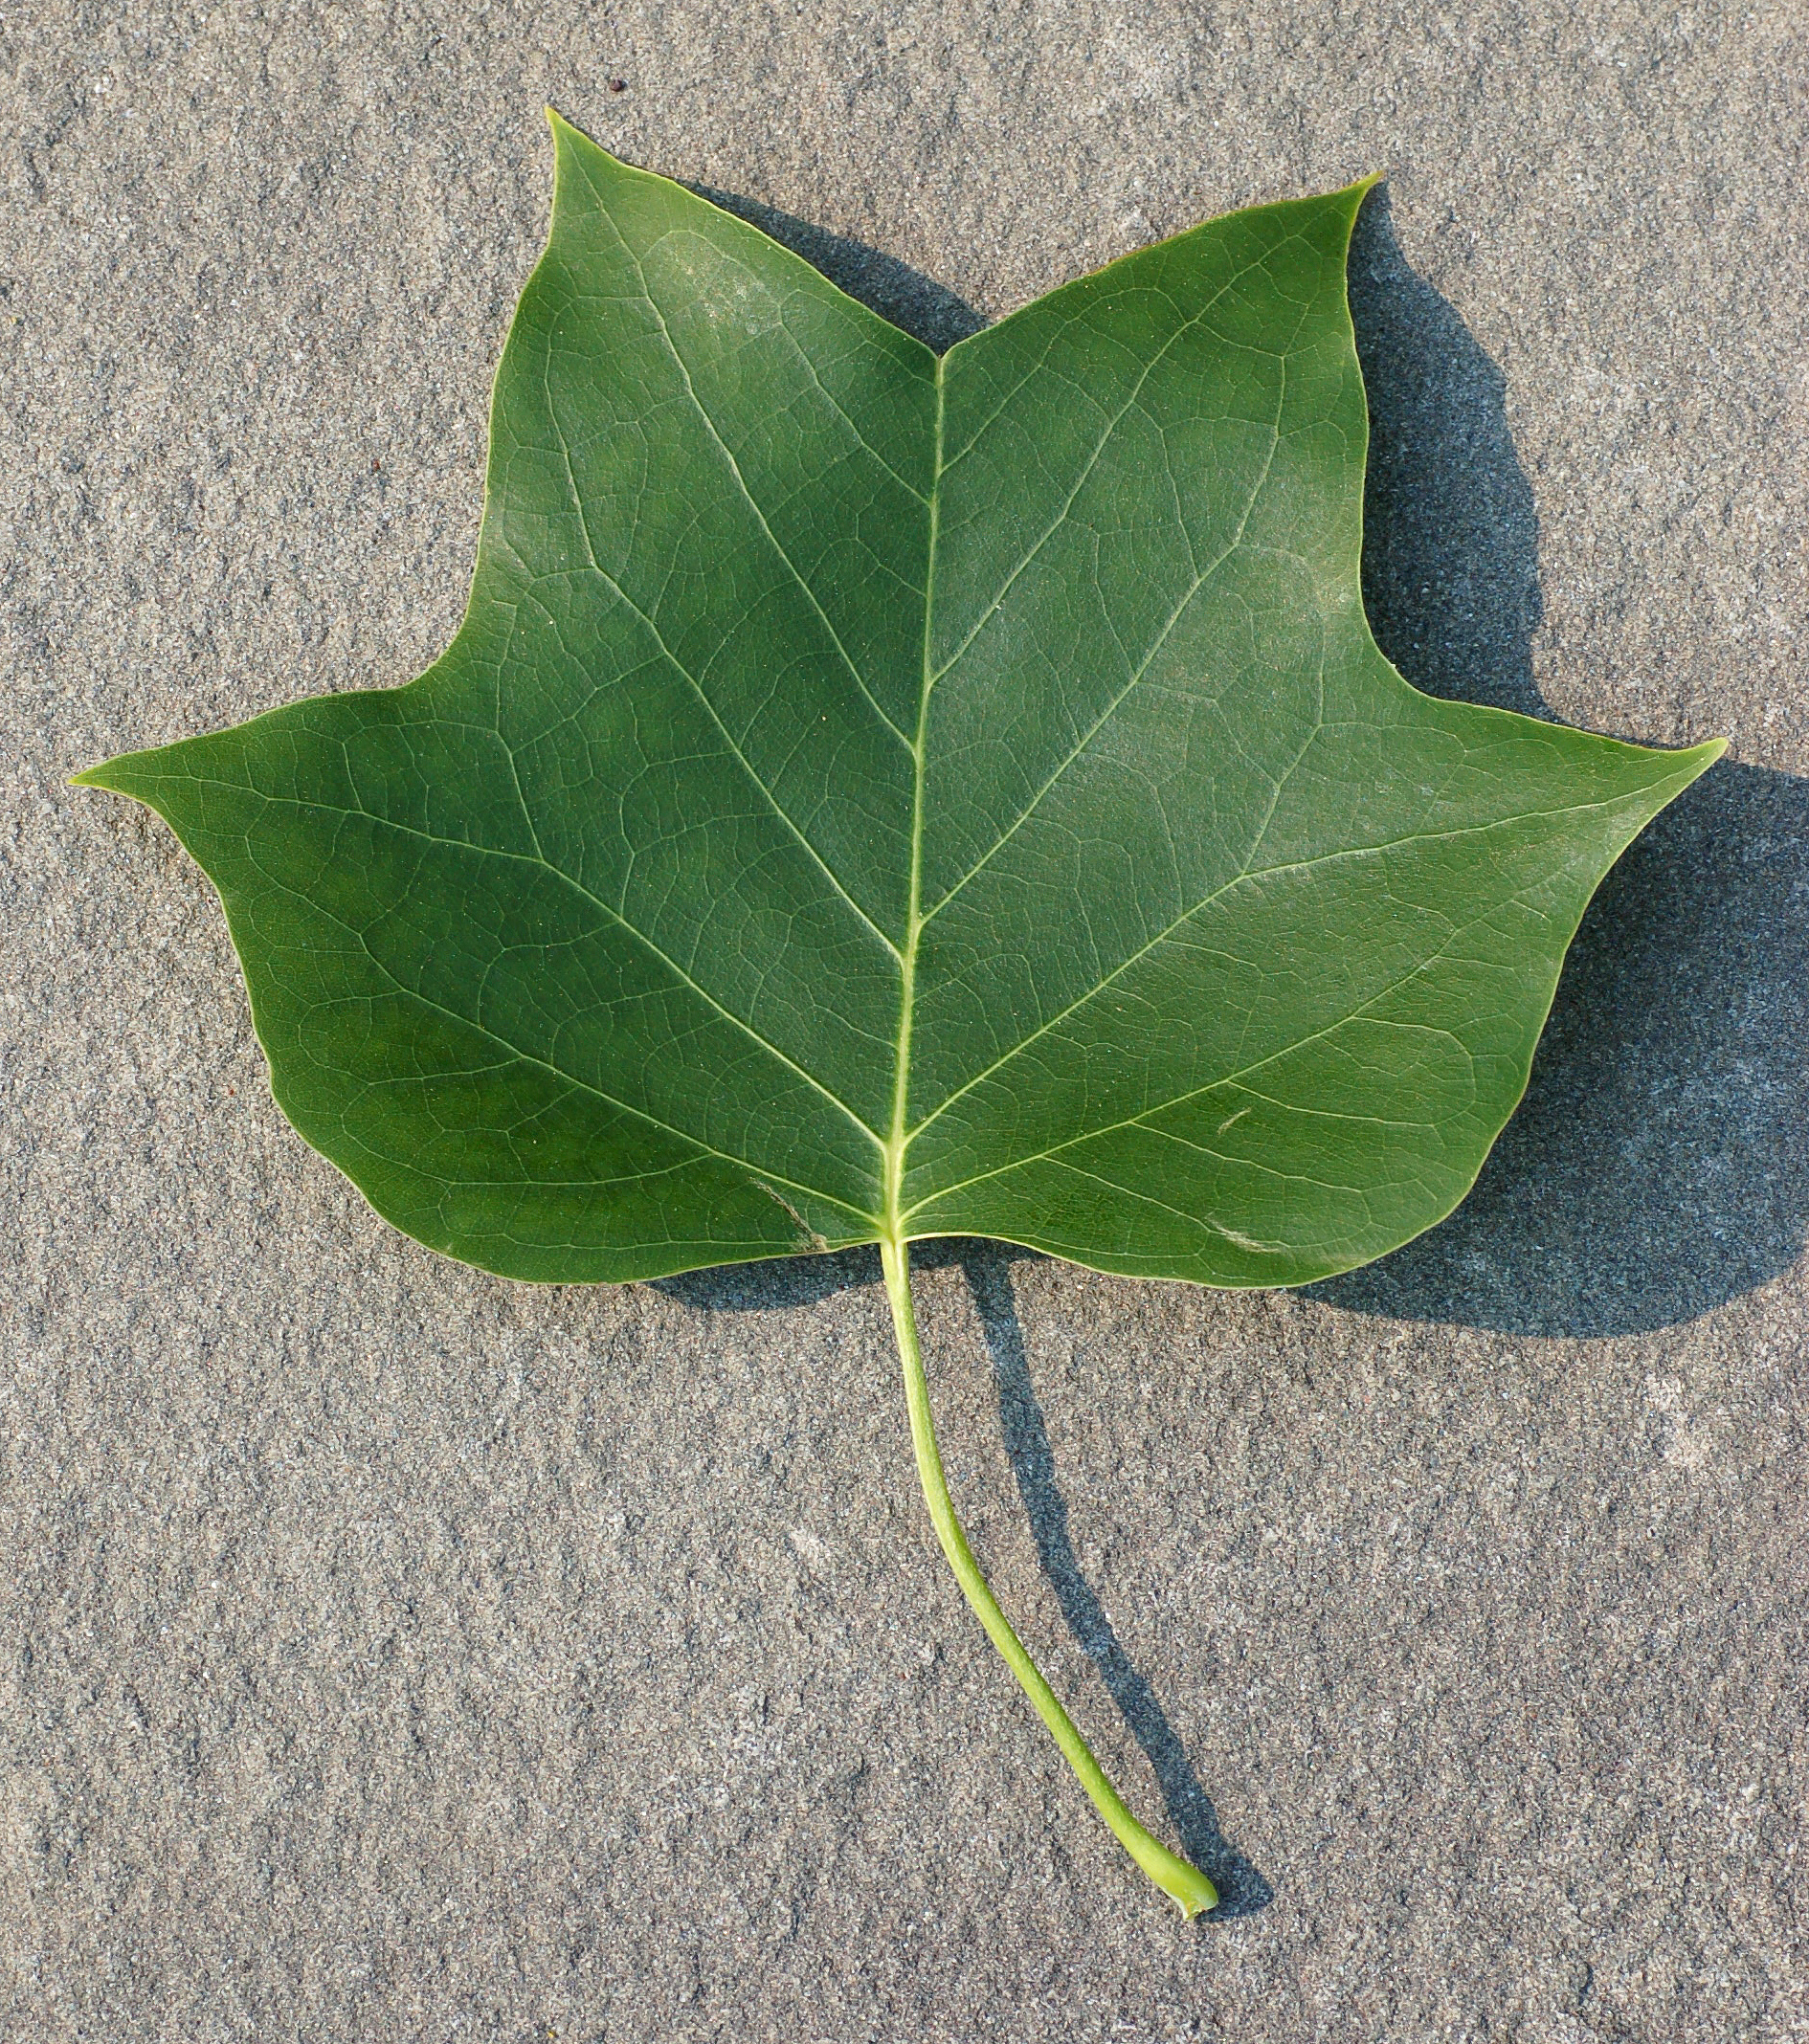 Image result for liriodendron leaves